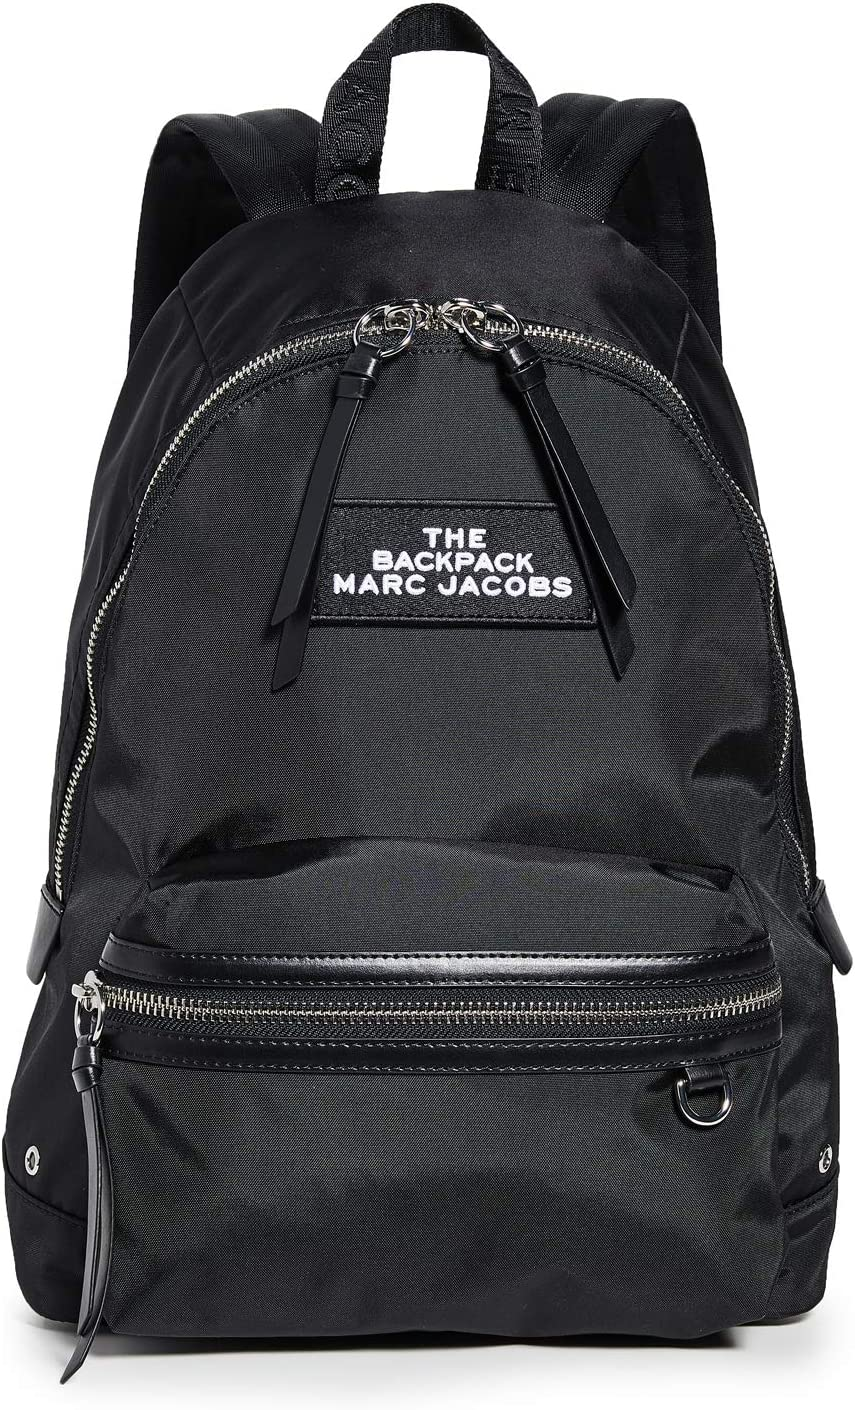 Marc Jacobs Women's The Large Backpack, Black, One Size